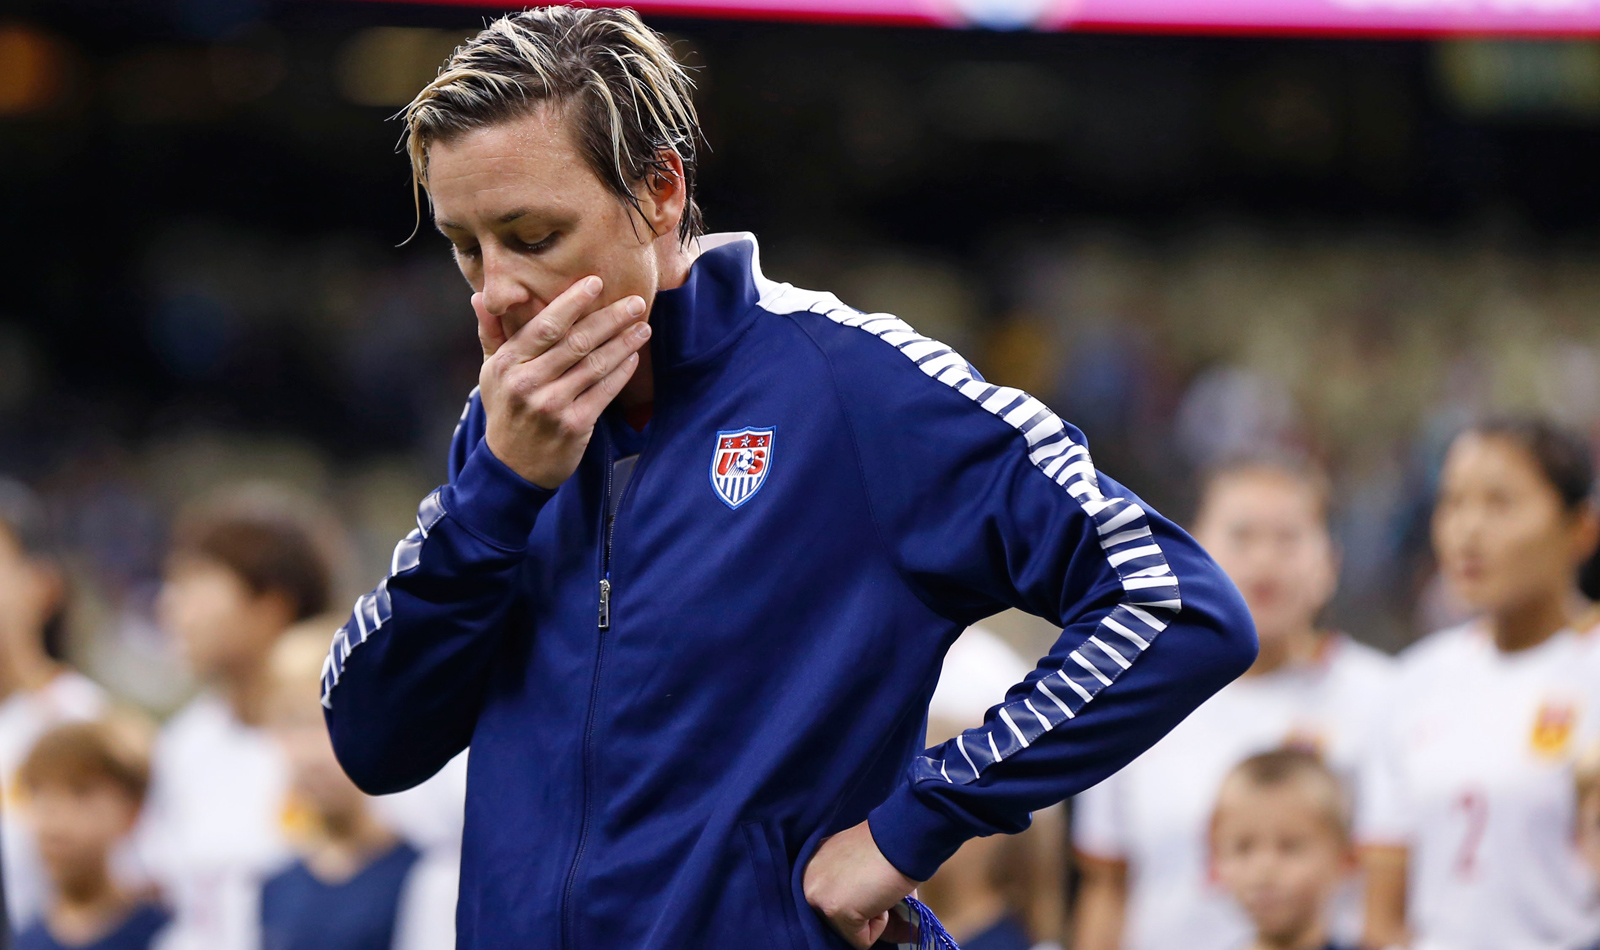 Abby Wambach is introduced in the U.S. lineup for the last time at the Superdome in New Orleans, playing in her final match before retiring. She ends her U.S. career with 255 appearances and an international-record 184 goals.